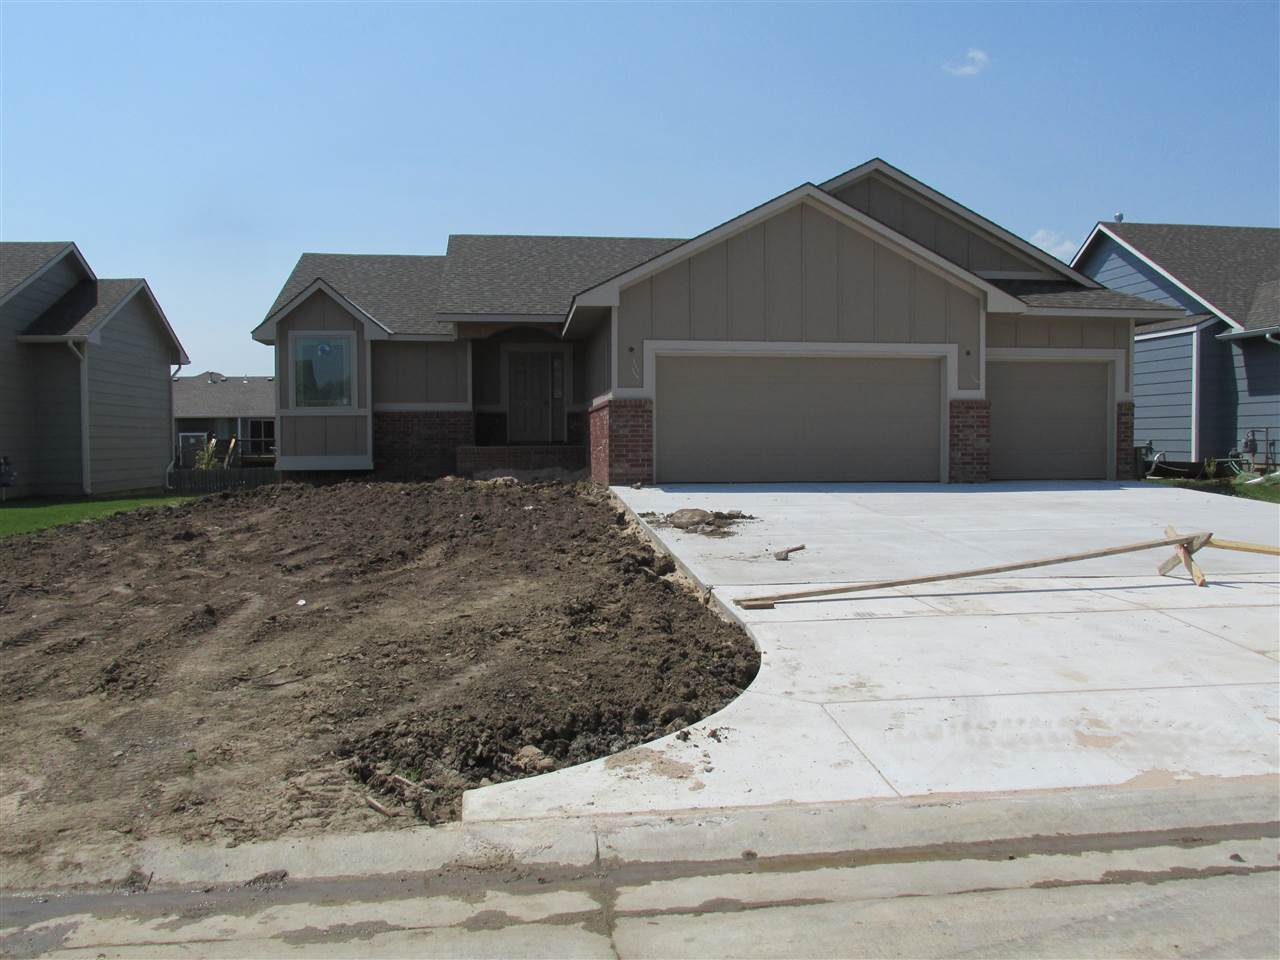 Under Construction**Spacious Mid-level Walkout Split Bedroom Plan on a Cul-de-sac lot has 2 bedrooms